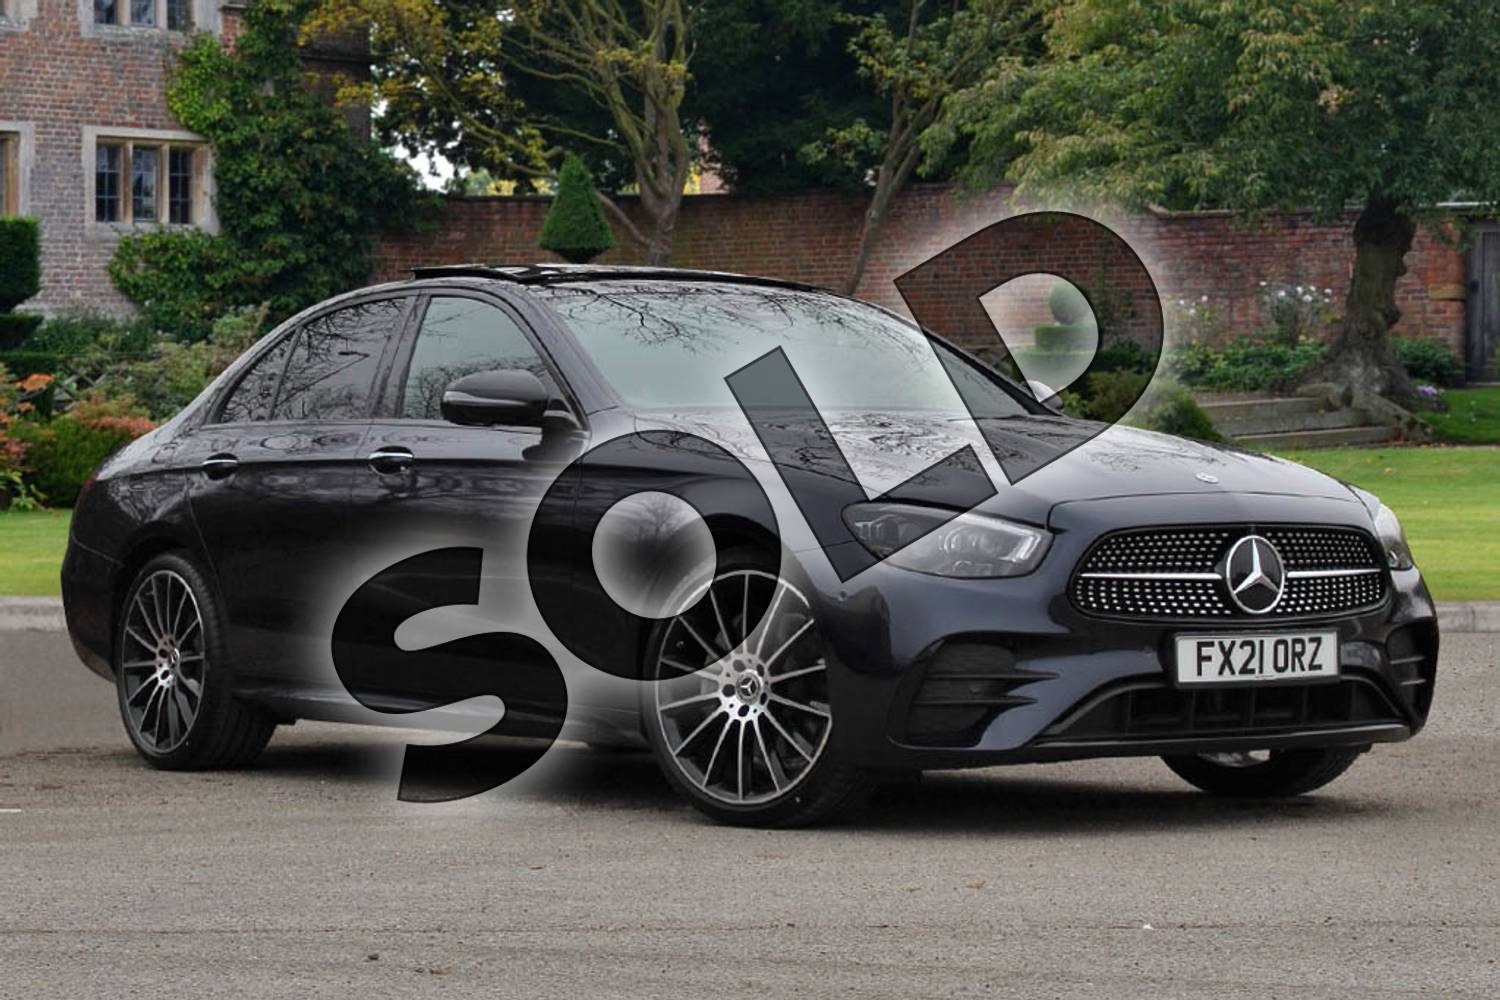 2021 Mercedes-Benz E Class E220d AMG Line Night Edition Prem+ 4dr 9G-Tronic in Cavansite Blue Metallic at Mercedes-Benz of Lincoln